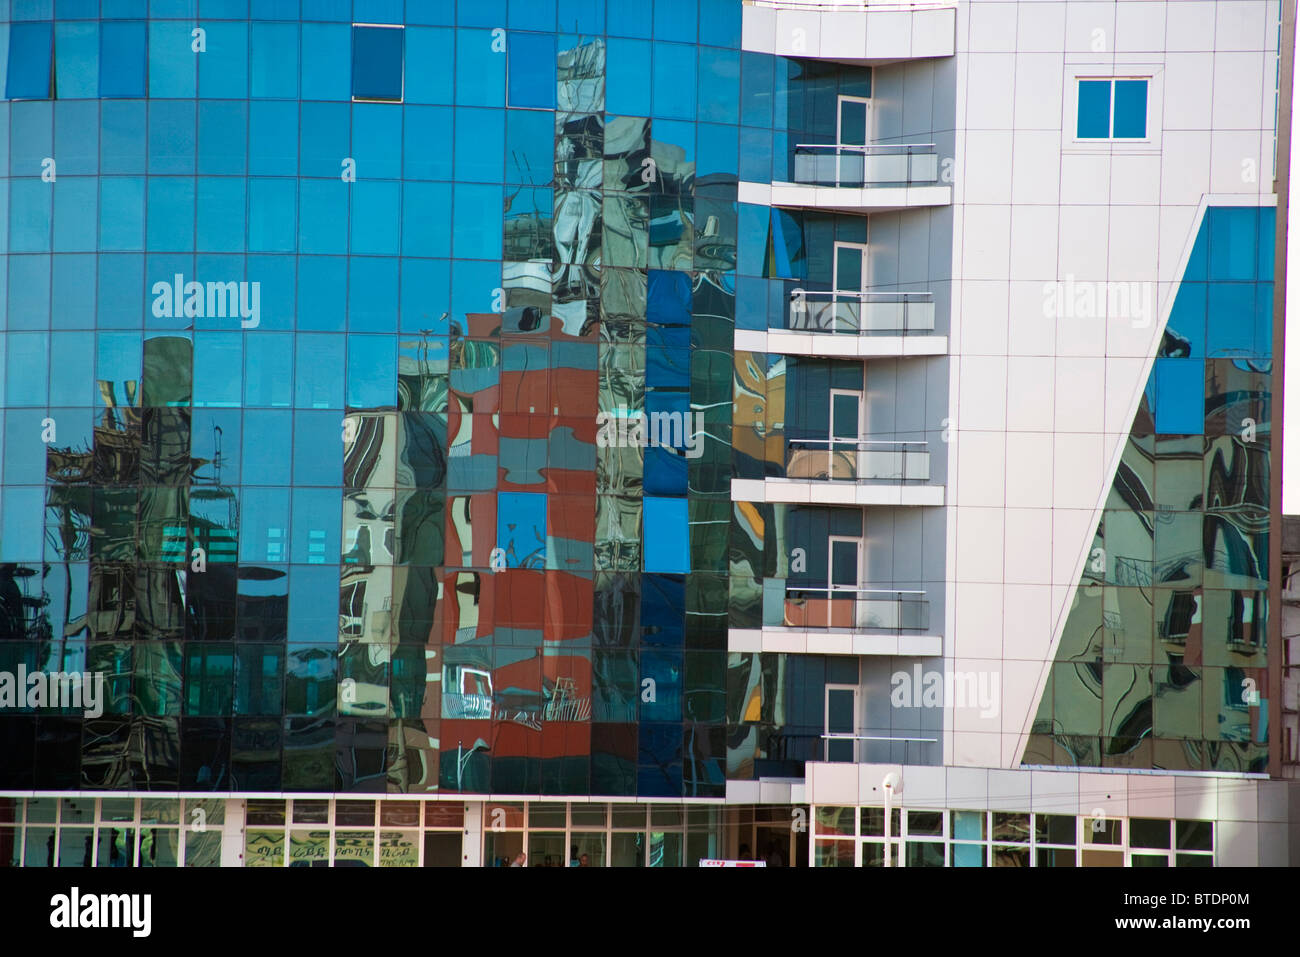 Reflections in the blue glass frontage of a modern building in downtown Addis Ababa - Stock Image